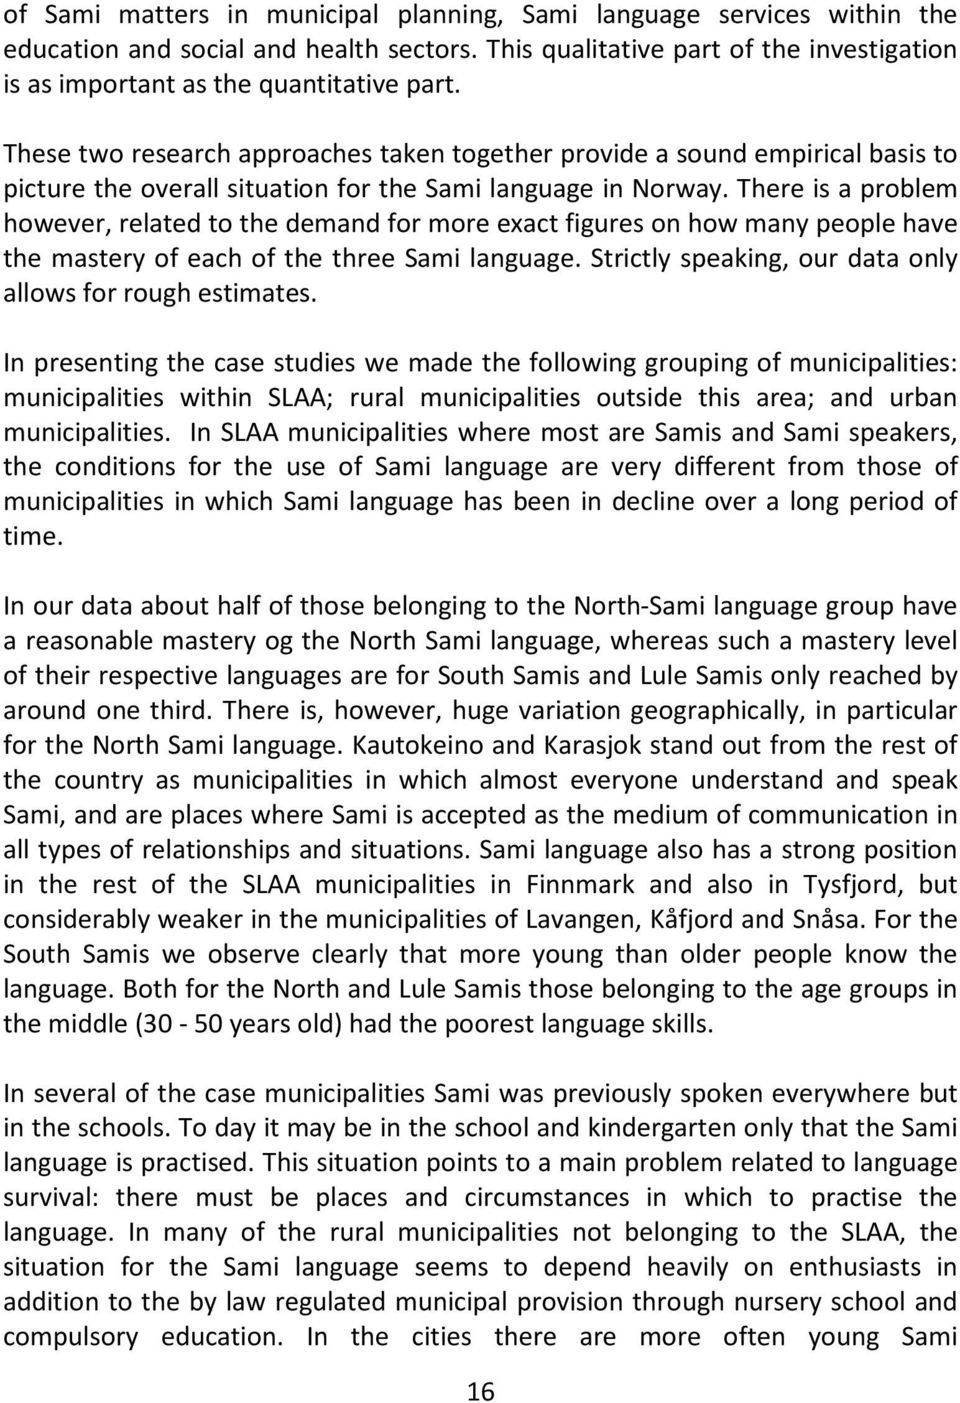 There is a problem however, related to the demand for more exact figures on how many people have the mastery of each of the three Sami language.